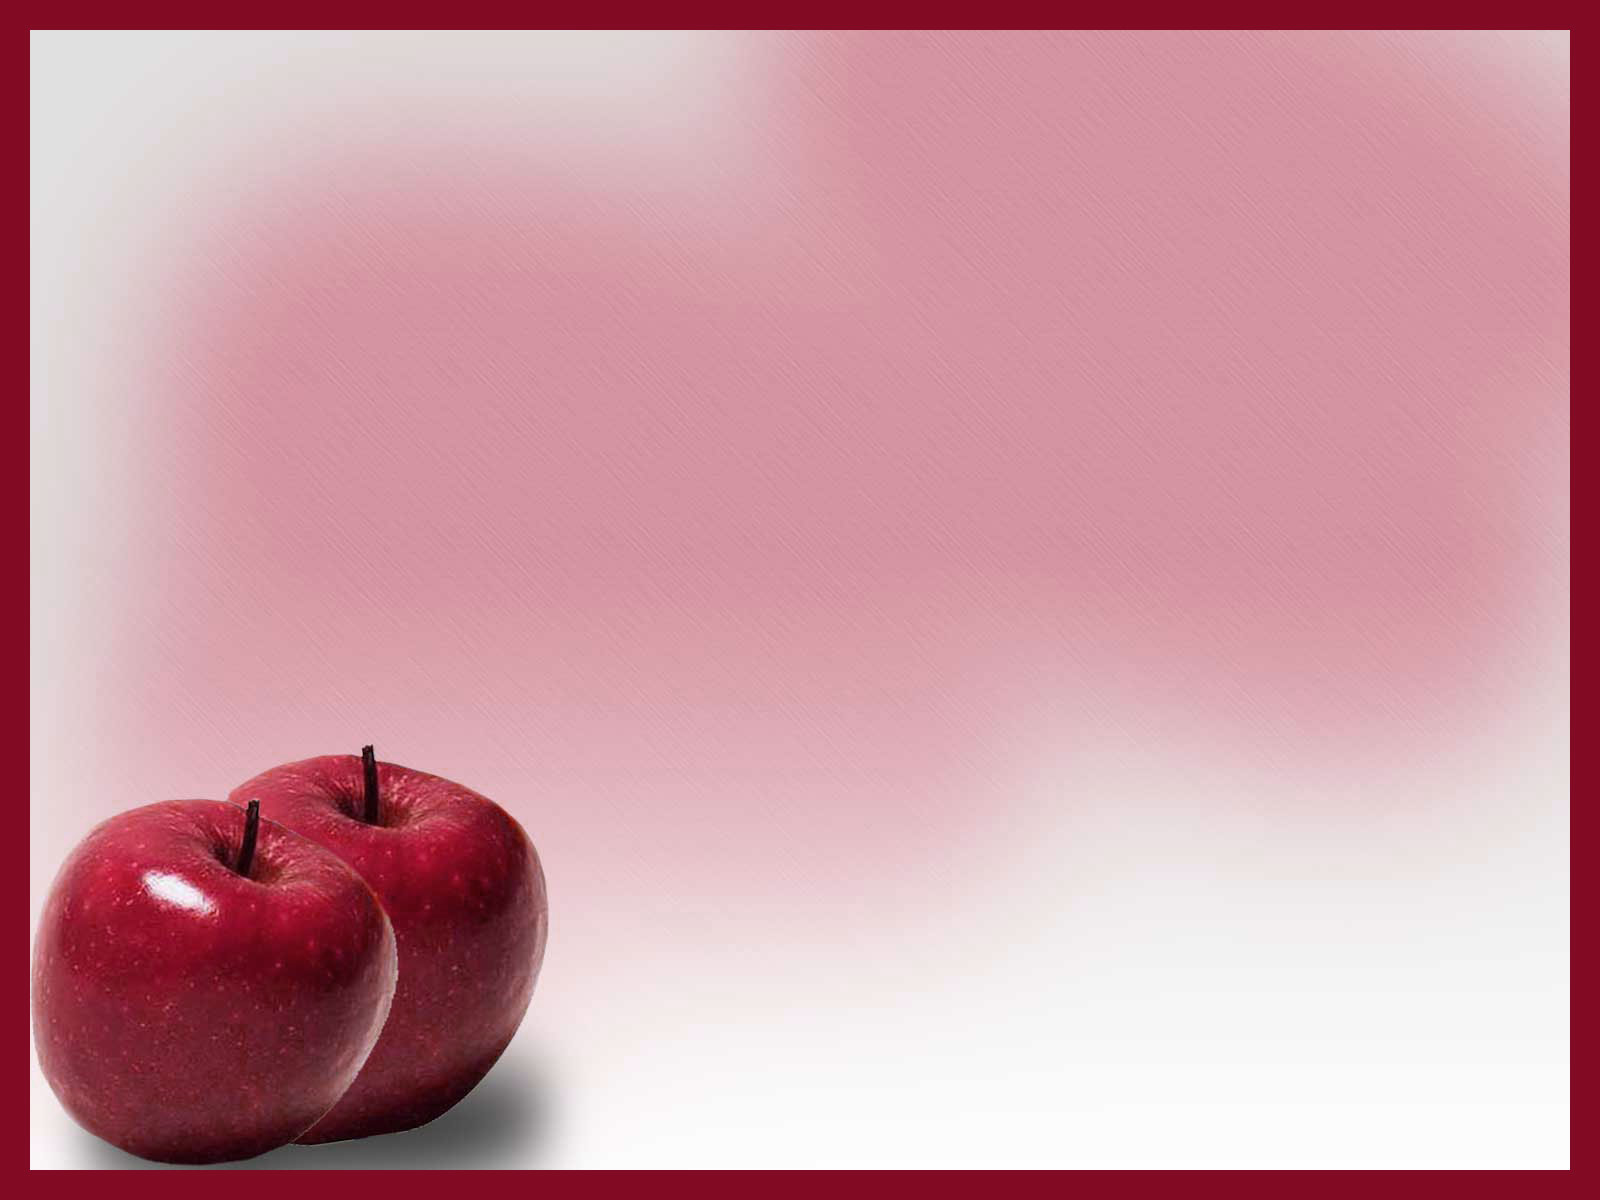 dark-red-red-apple-powerpoint-template-download